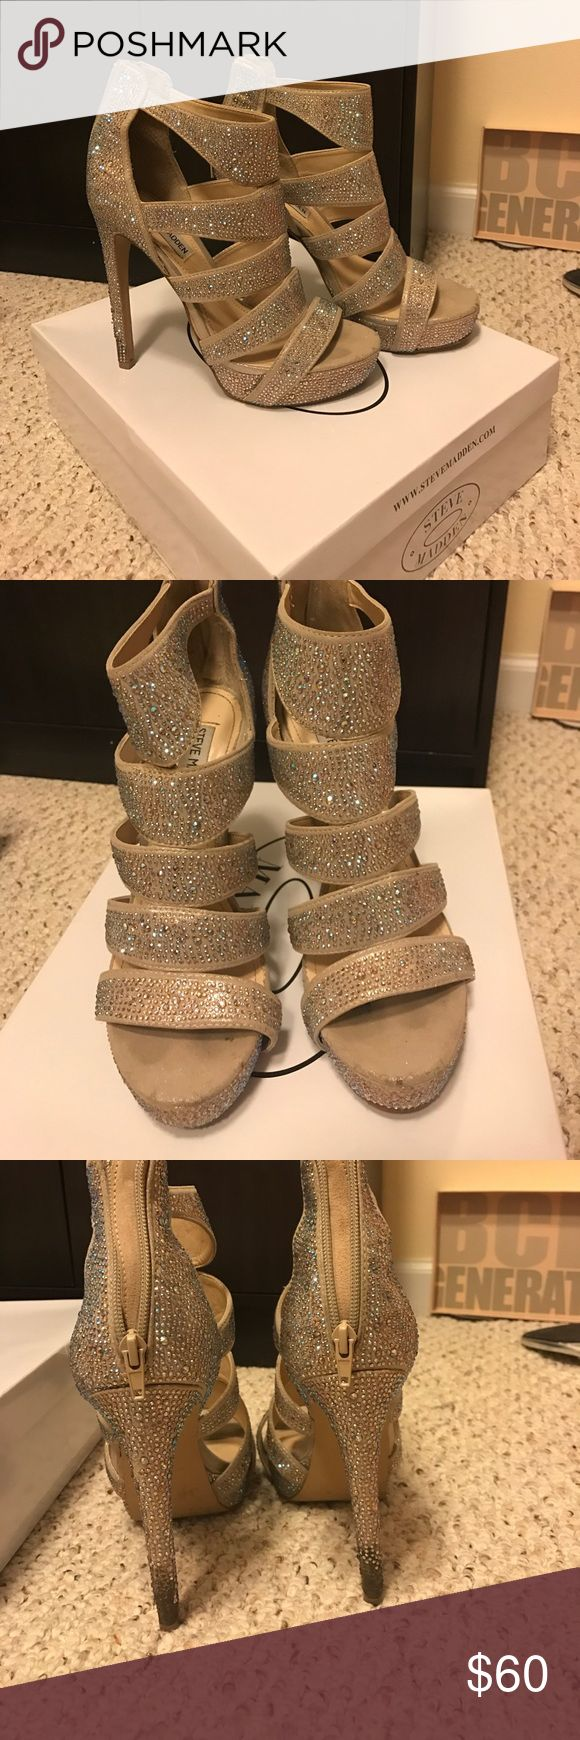 Steve Madden rhinestone sandals Steve Madden Spycee rhinestone sandals. Worn for my wedding. Rhinestones on bottom of heal has been removed due to stepping in grass. In champagne color. Will look nice with any color dress. Steve Madden Shoes Heels